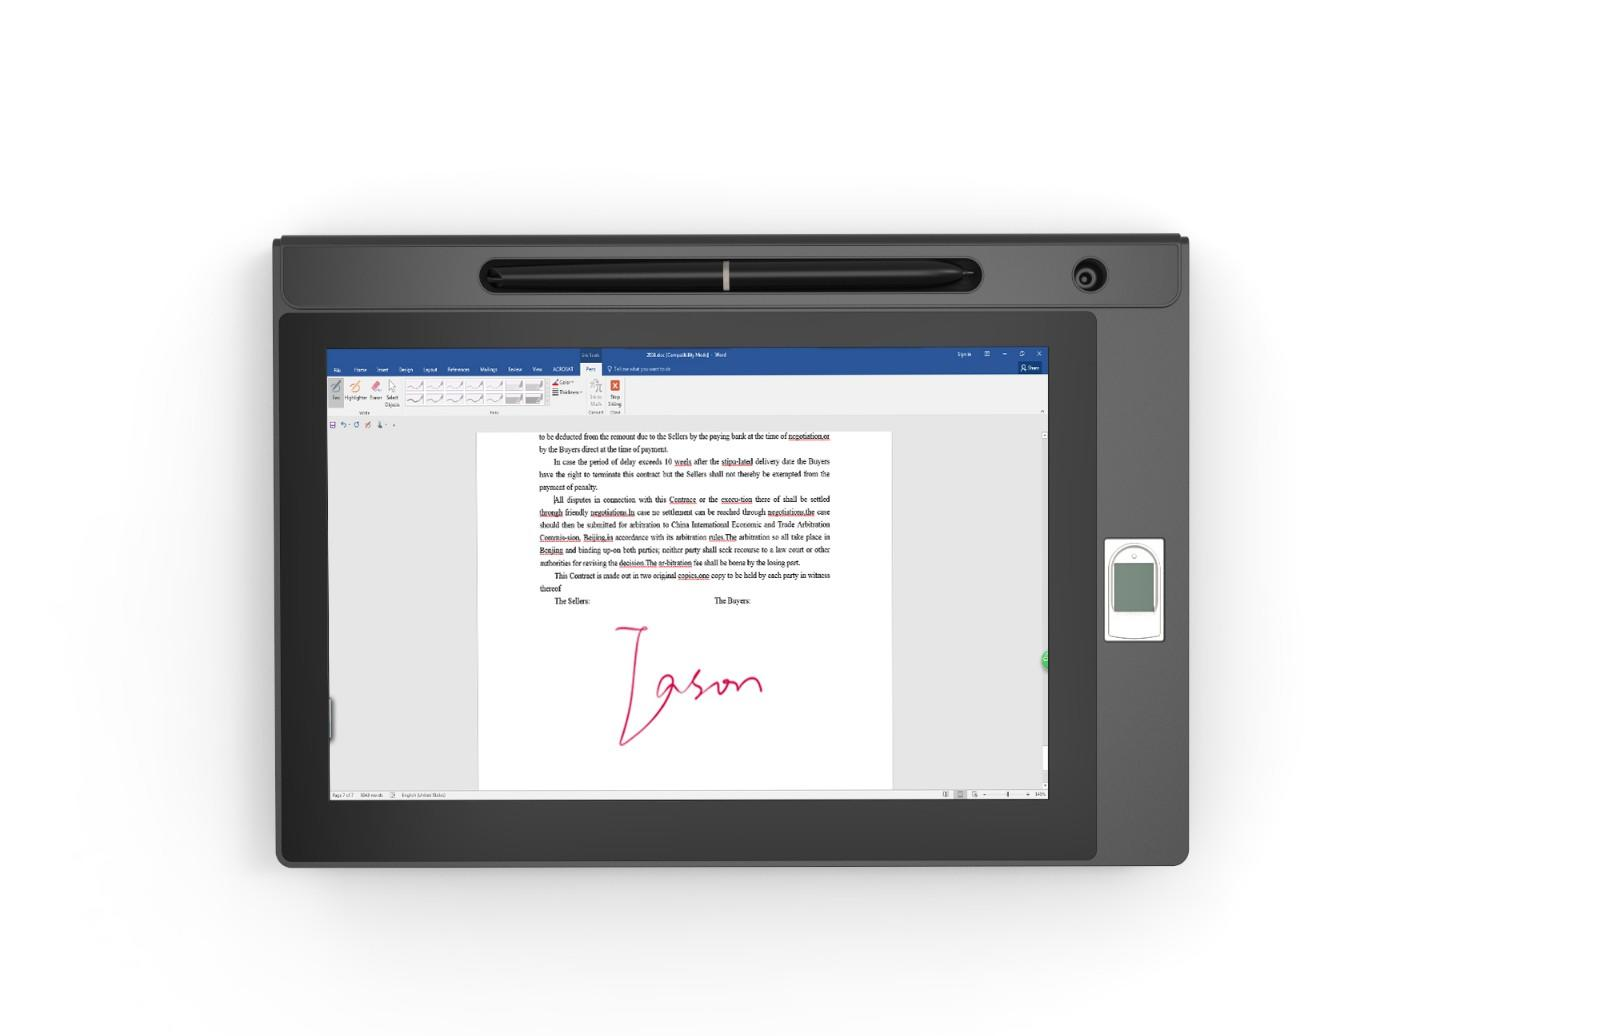 practical writing tablet on sale for commercial activity-2